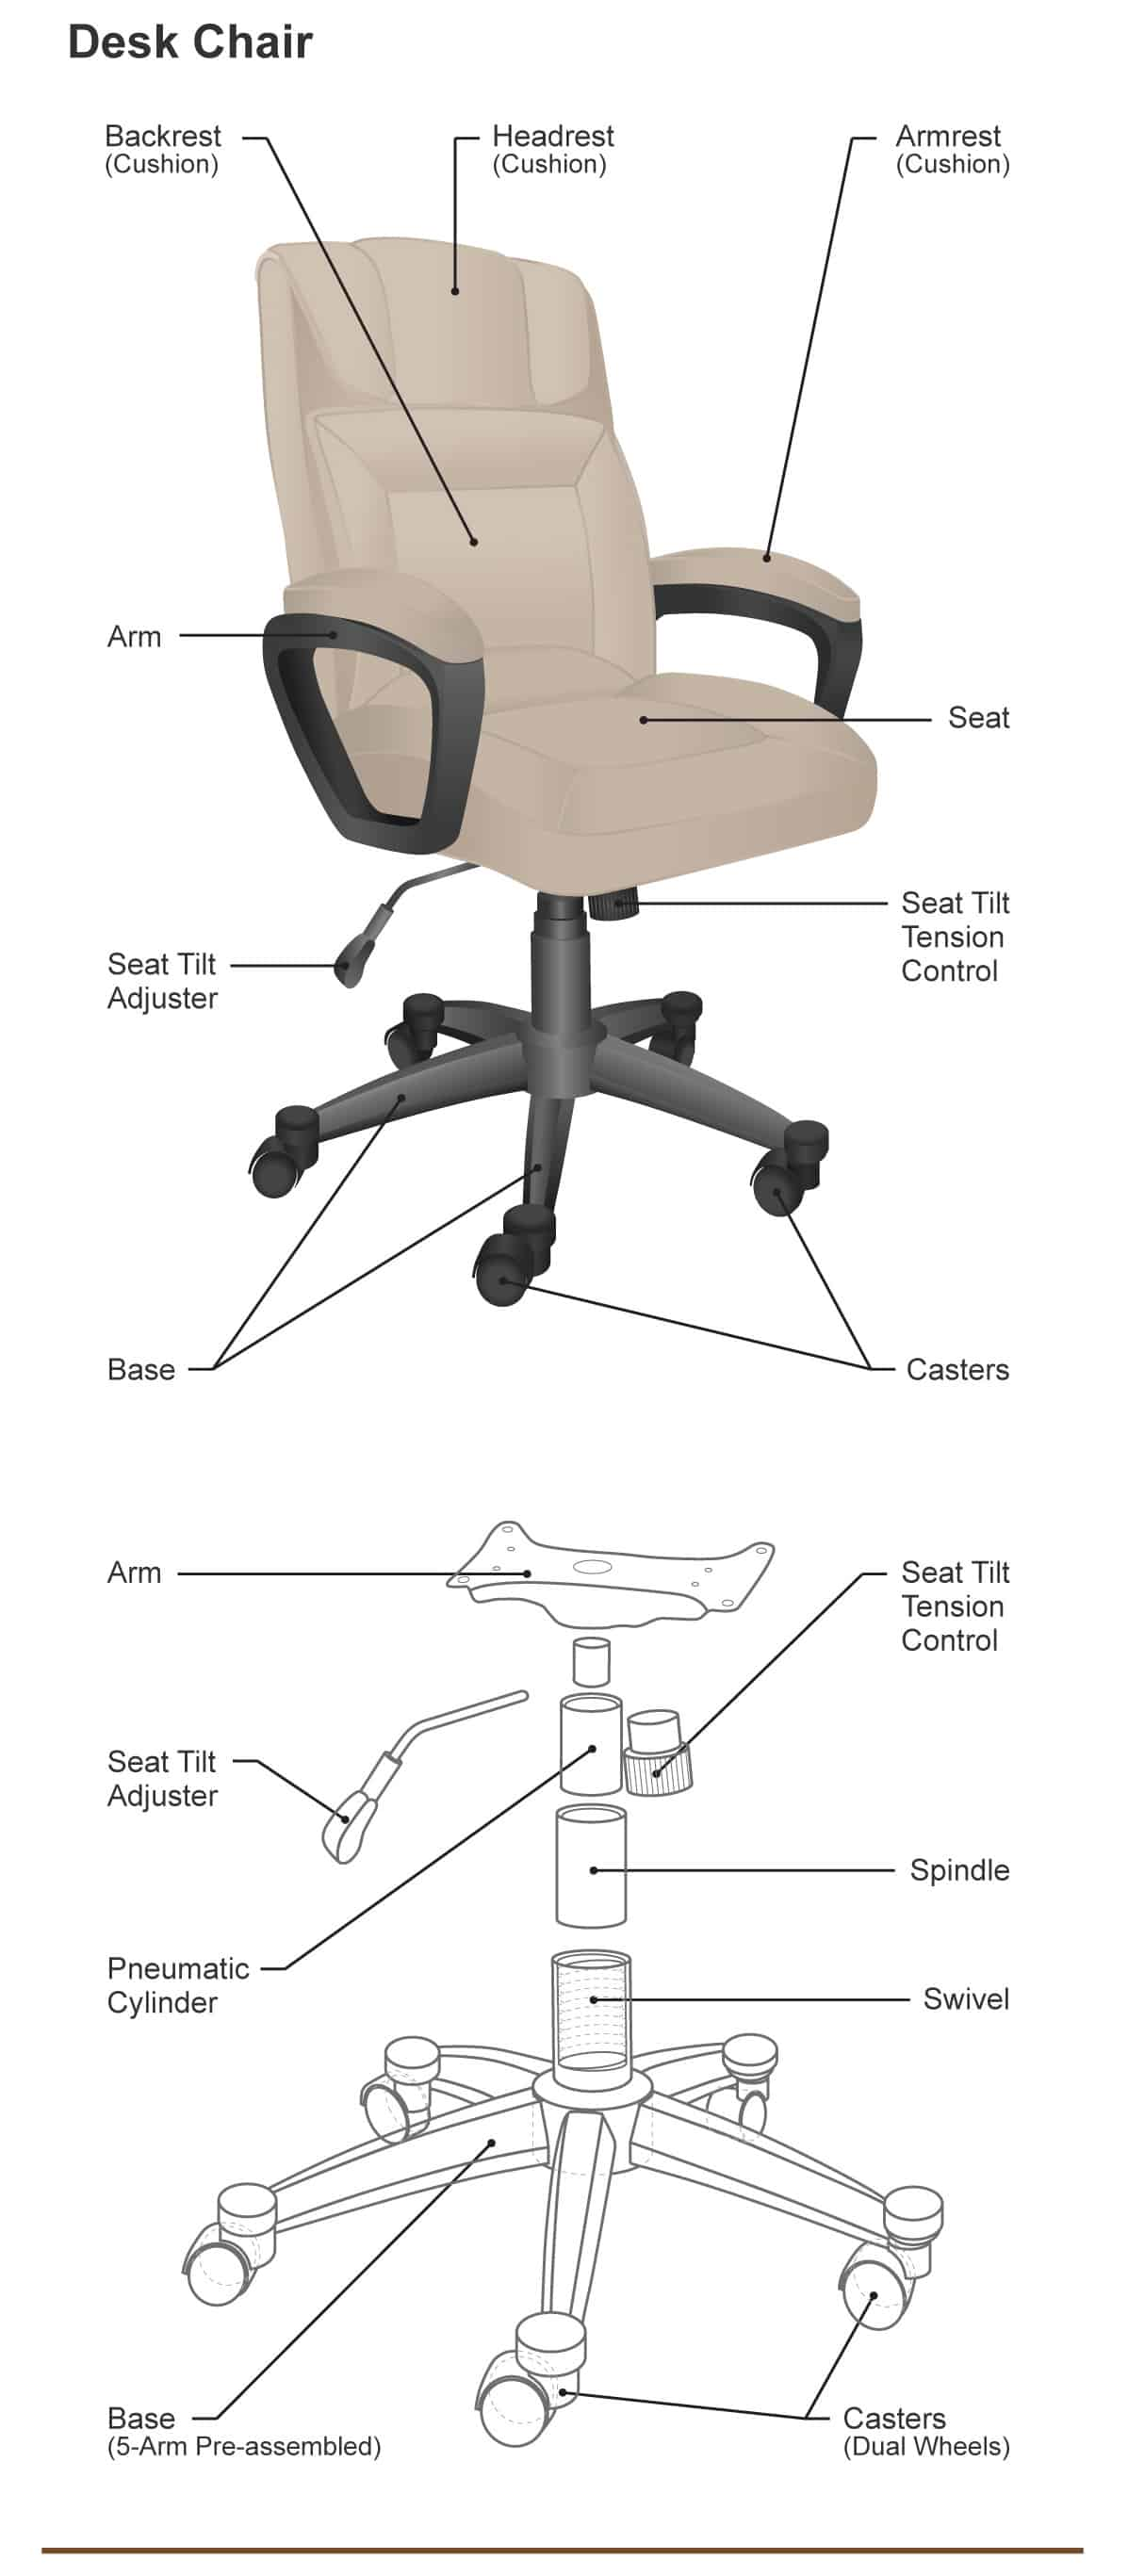 Diagram illustrating the different parts of a desk chair